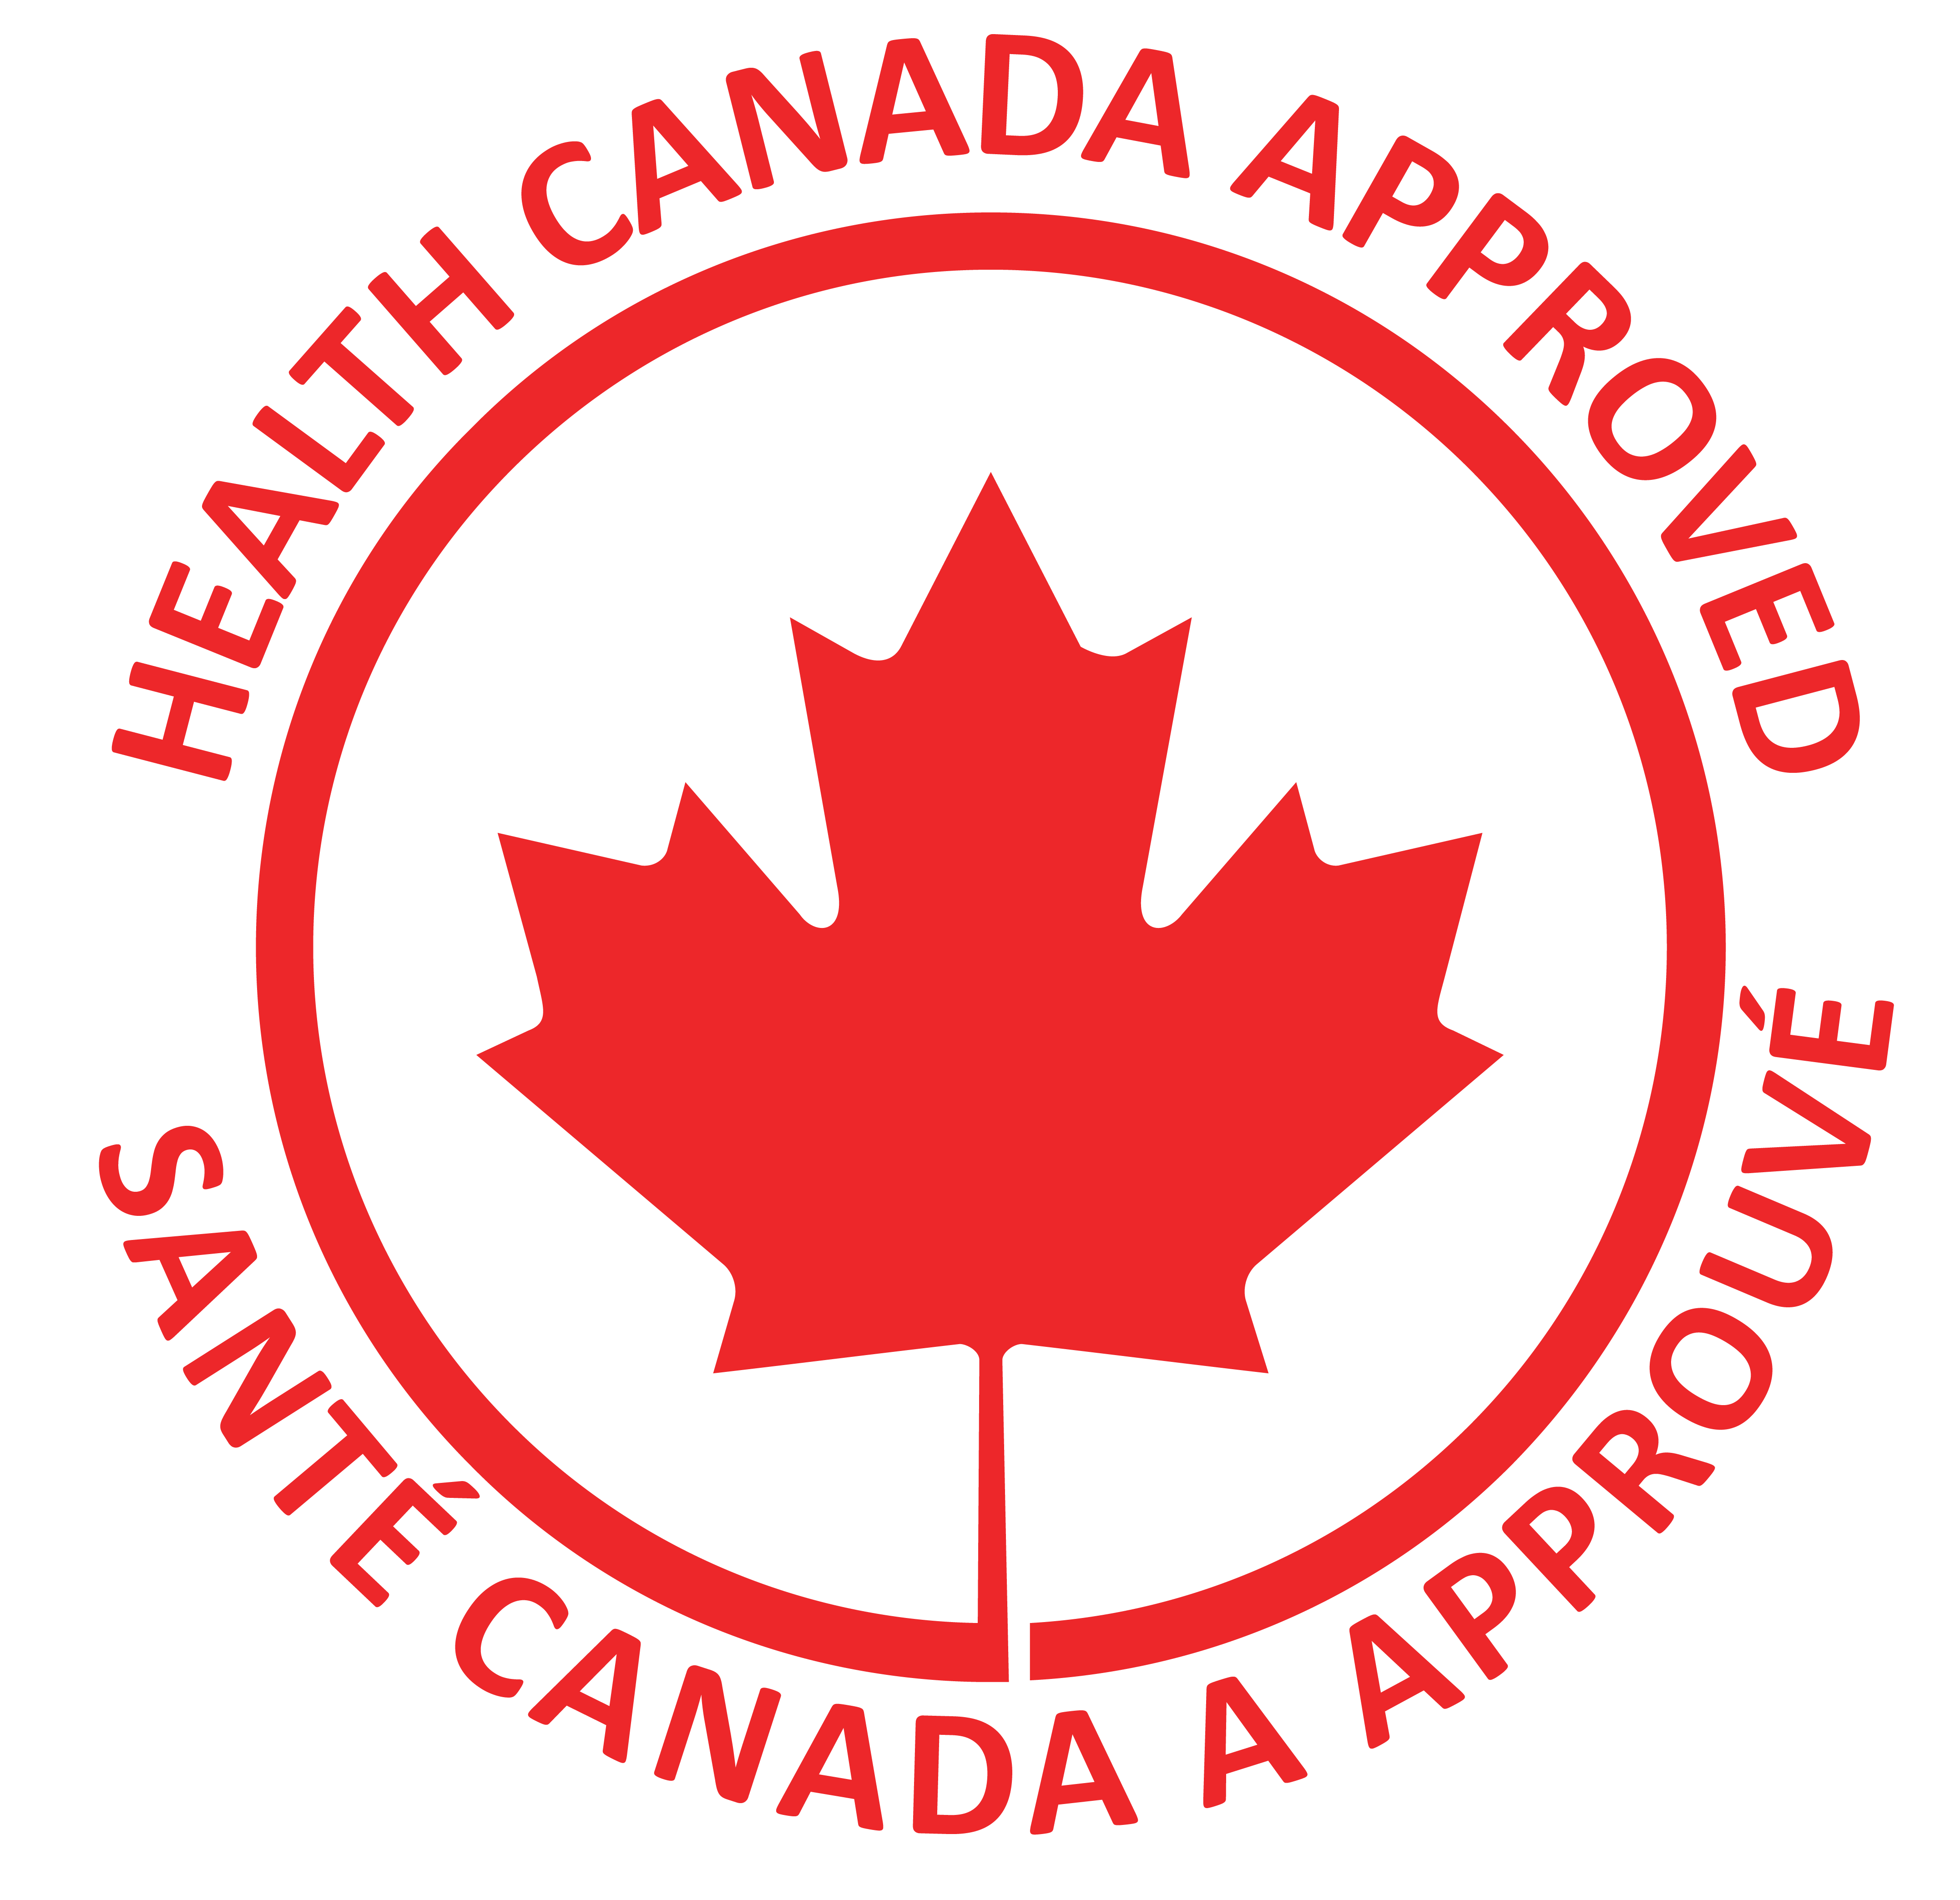 HealthCanadaApproved